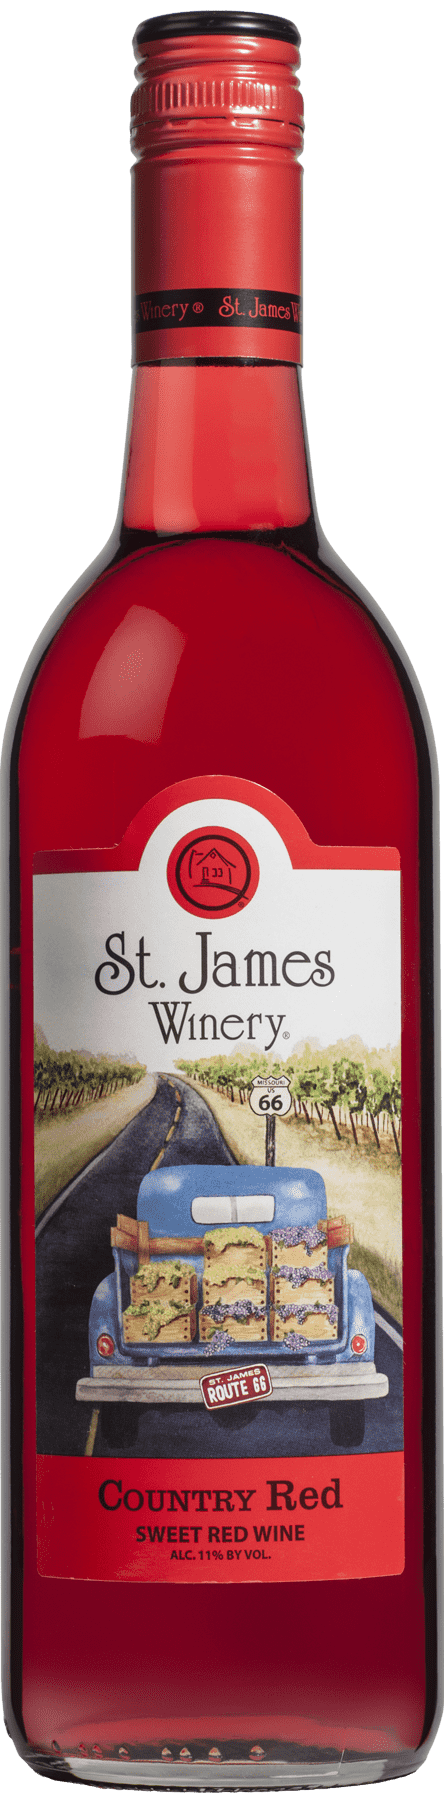 Country Red Sweet Wine - St. James Winery Missouri